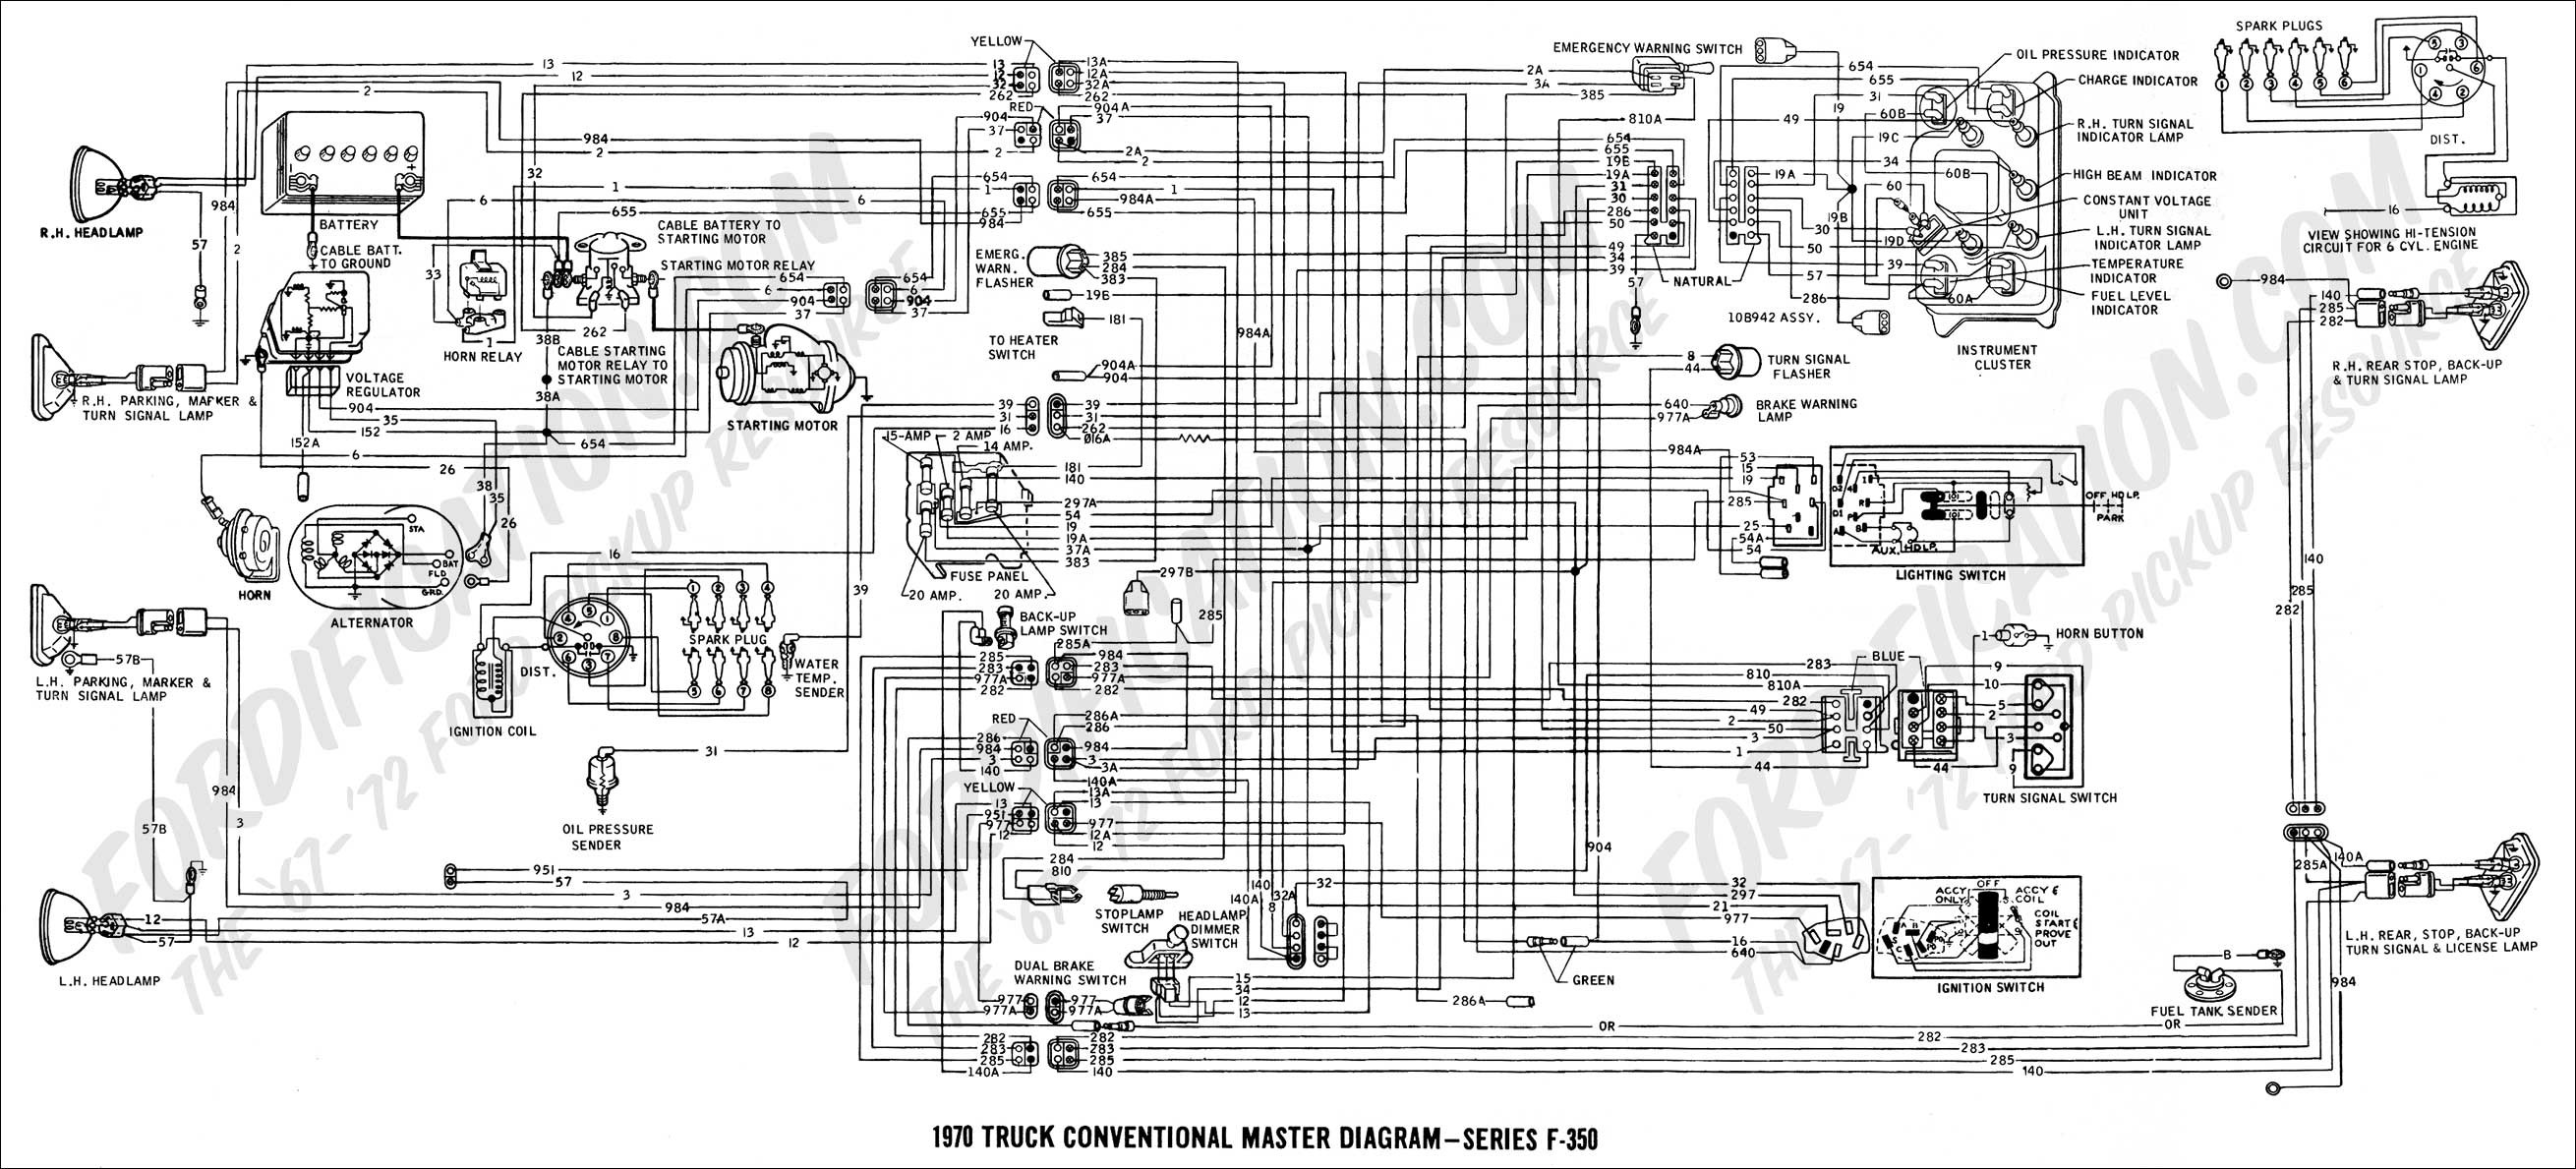 Ford Ranger 4 0 Engine Diagram 92 Wiring 1992 Fuel Pump Who The Equivalent 2006 3 Of